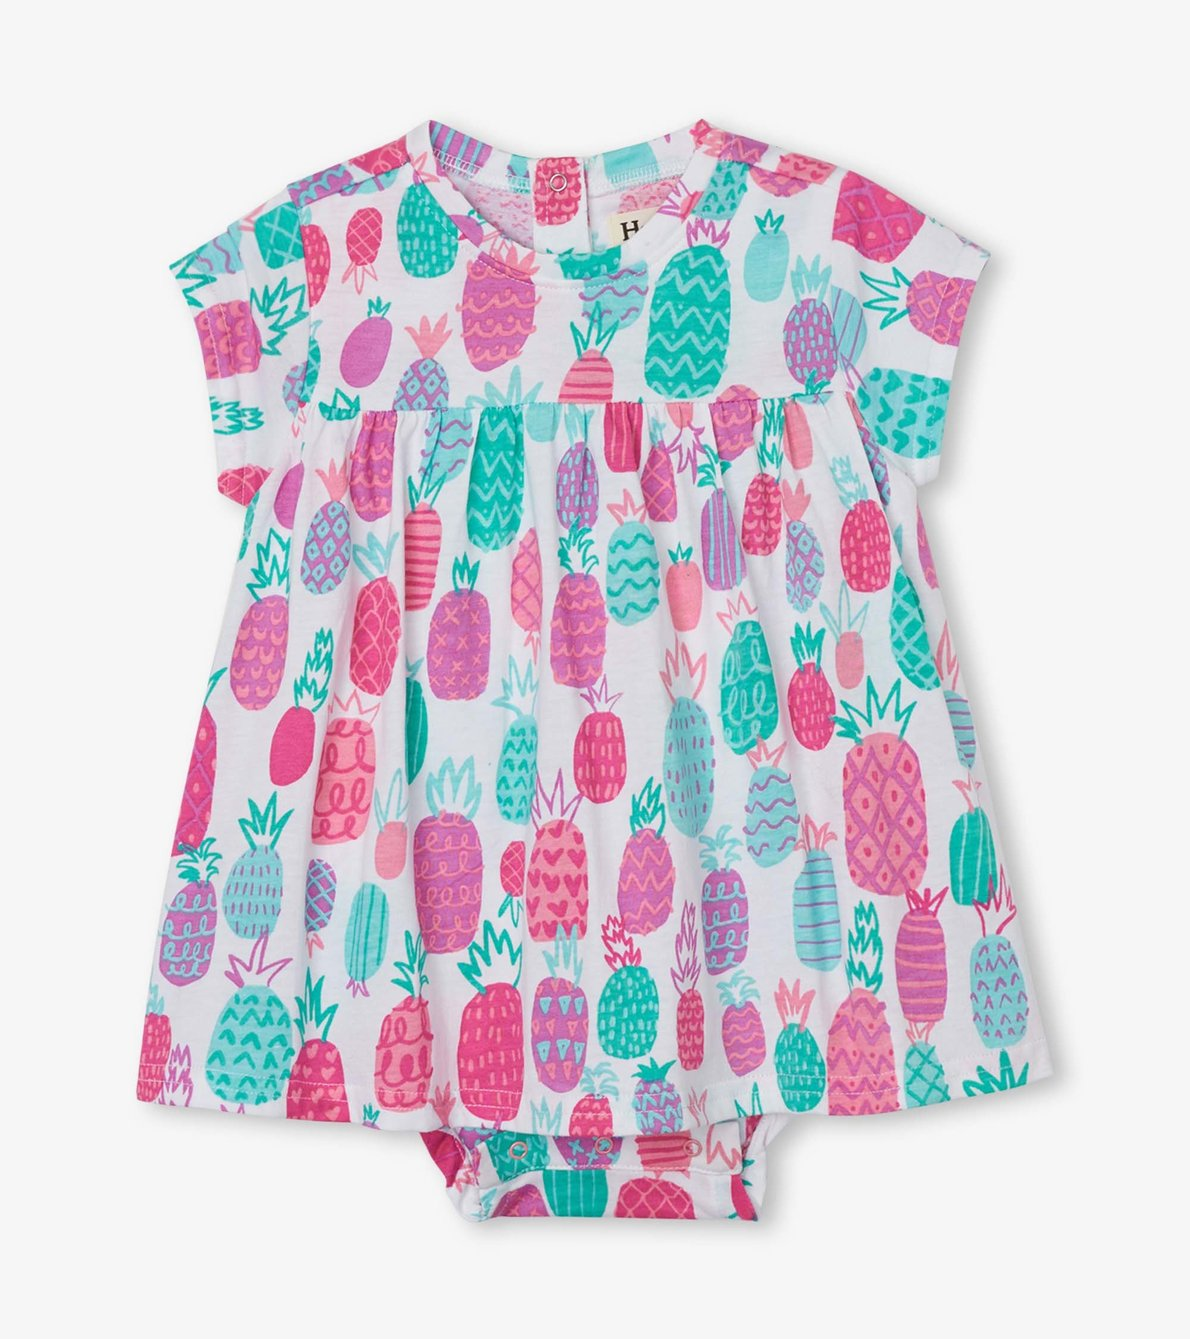 View larger image of Pineapple Doodles Baby One-Piece Dress